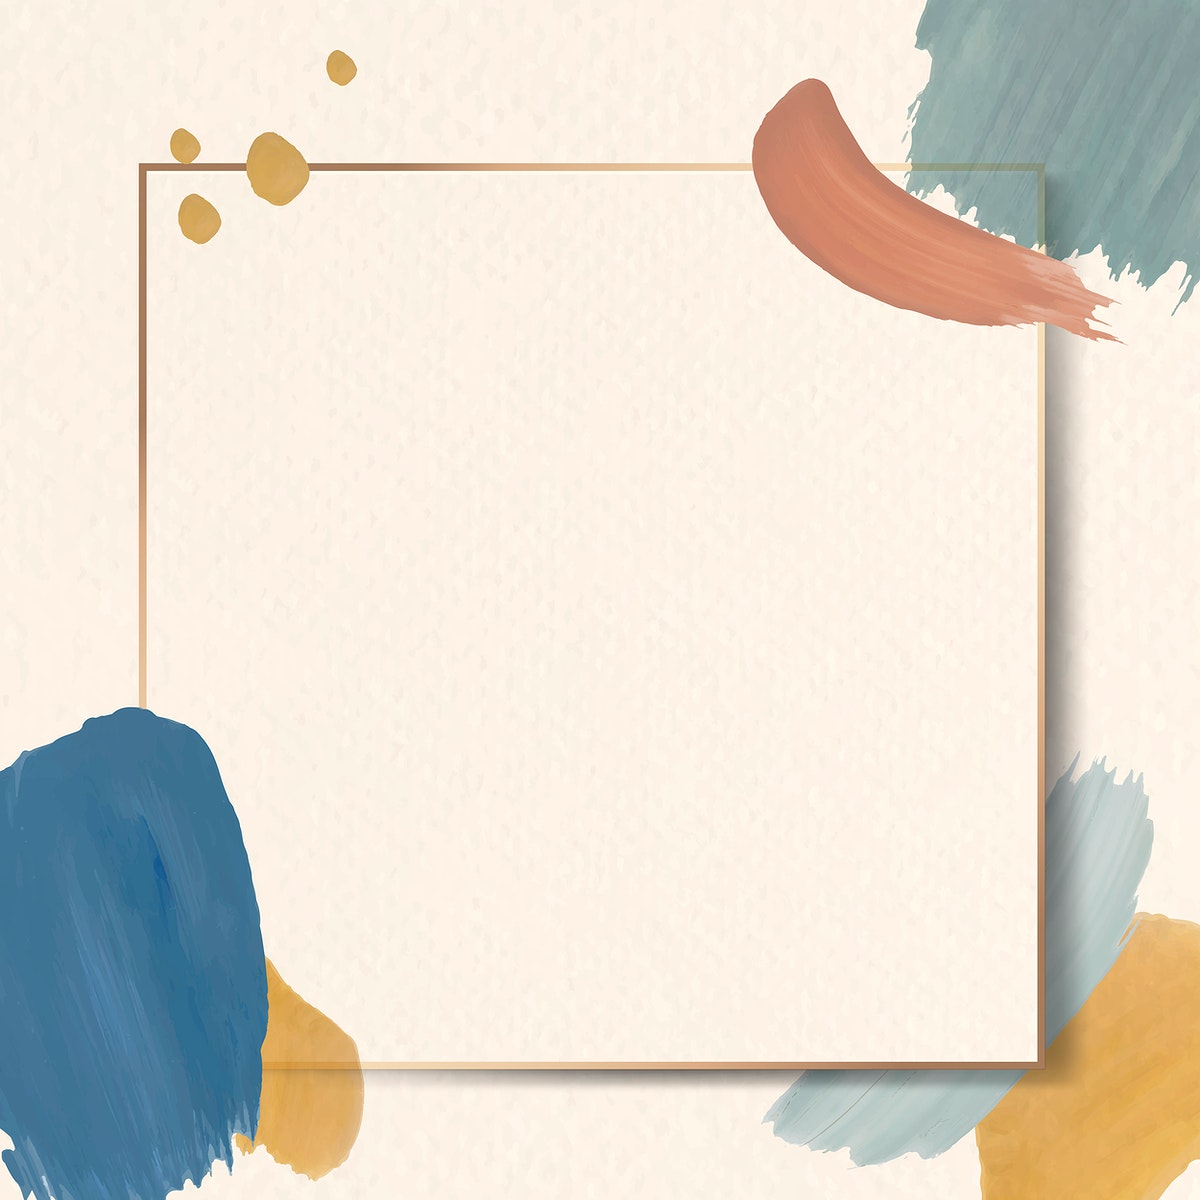 Colorful square frame on an abstract design element background vector